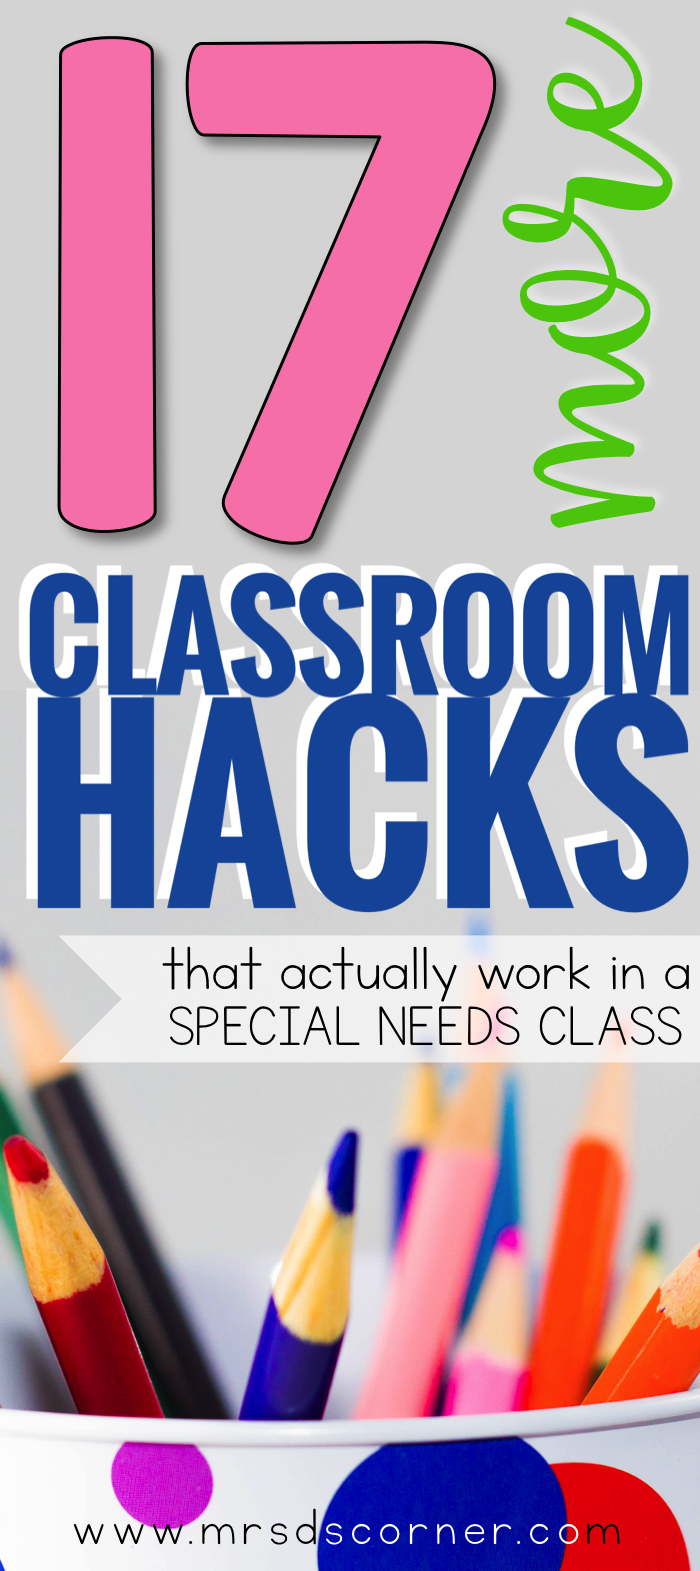 17 more classroom hacks that actually work in a special needs classroom and will change your teacher life. Blog post at Mrs. D's Corner.